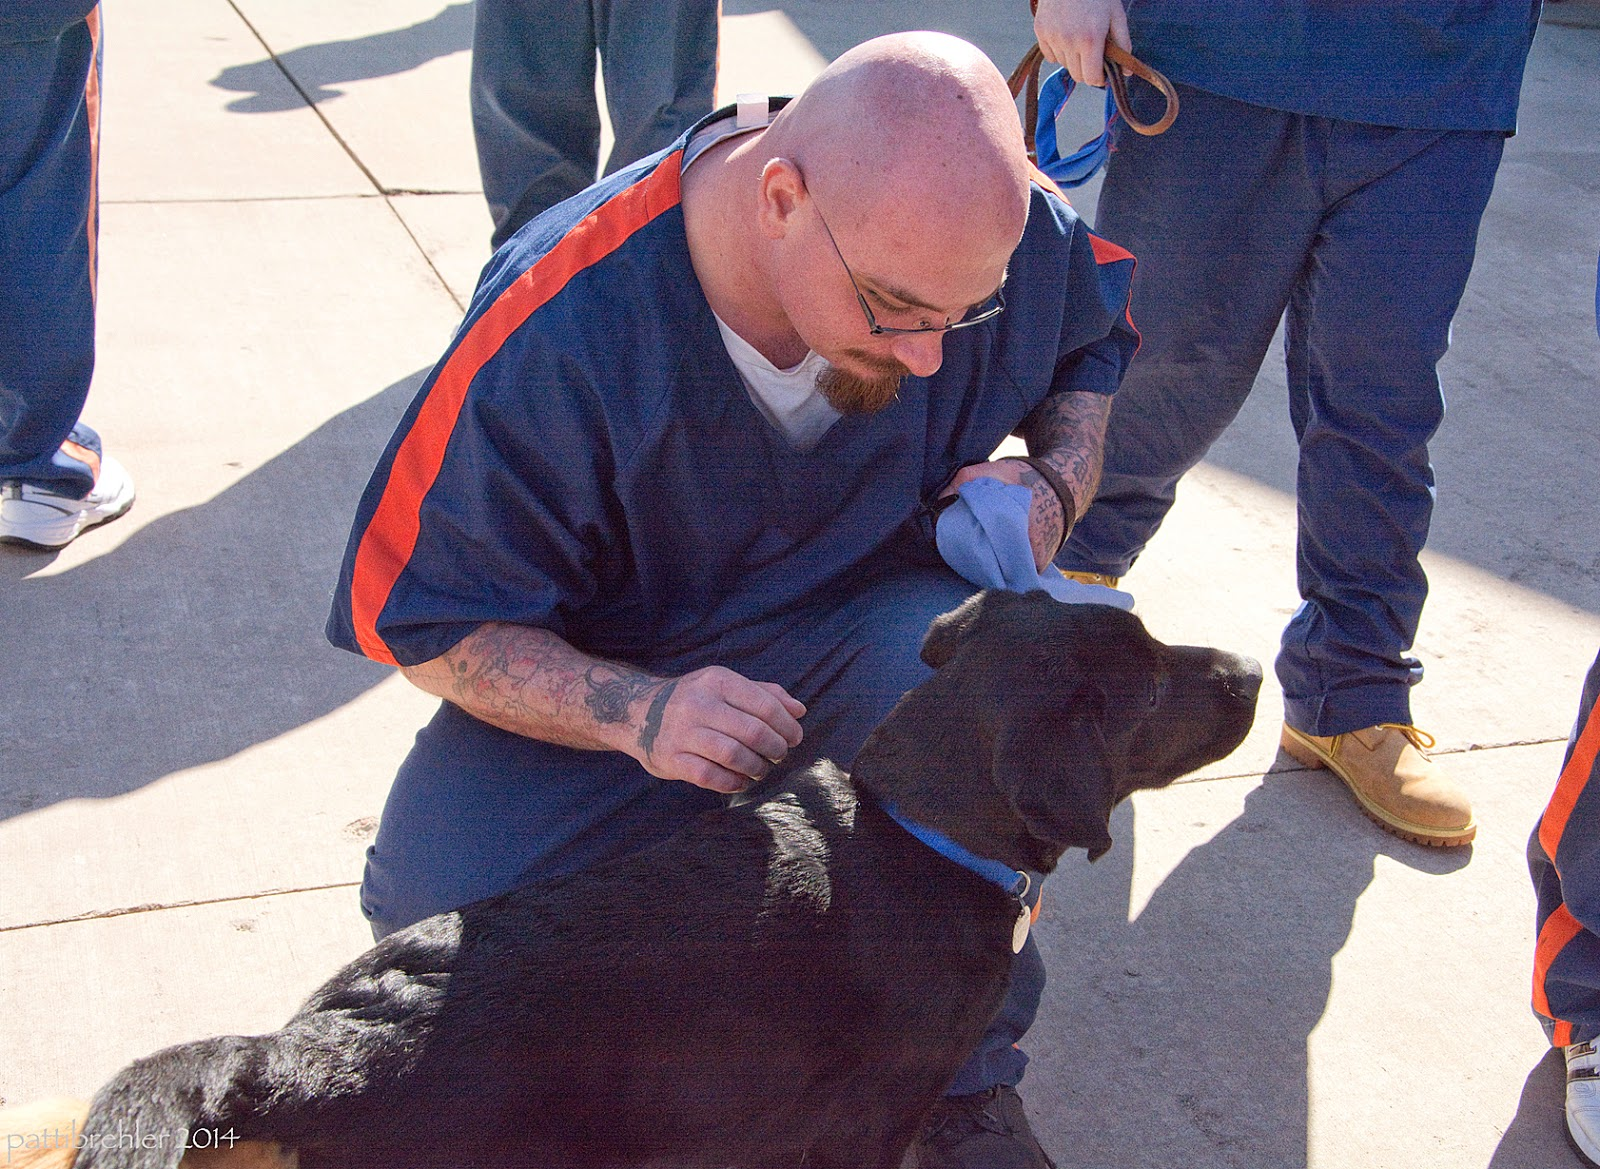 A man dressed in the prison blue uniform with an orange stripe down his should and short sleeve, is kneeling on sunny cement looking down at a black lab puppy. The man is bald and is wearing glasses and his arms are tatooed. He is looking down at the puppy and holding a baby blue Future Leader Dog jacket in his left hand. He is reaching toward the lab with his right hand. The lab is facing to the right. There are legs of other men visible in the background on both sides of the kneeling man and directly behind him. There are stark shadows of the men's legs across the cement. The lab is wearing a blue collar.